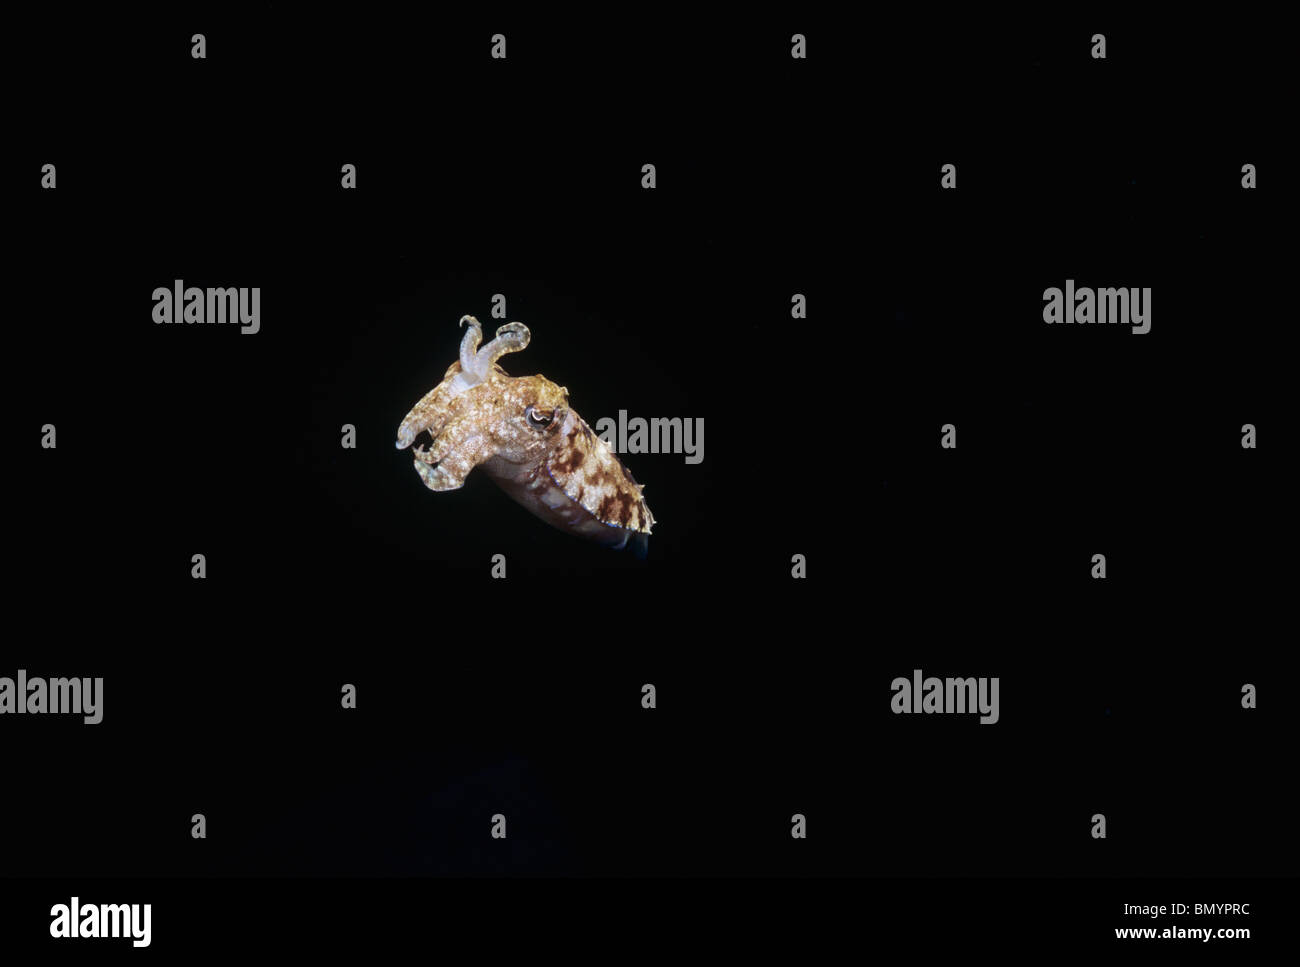 Cuttlefish (Sepia gibba) at Night on Coral Reef. Egypt - Red Sea - Stock Image